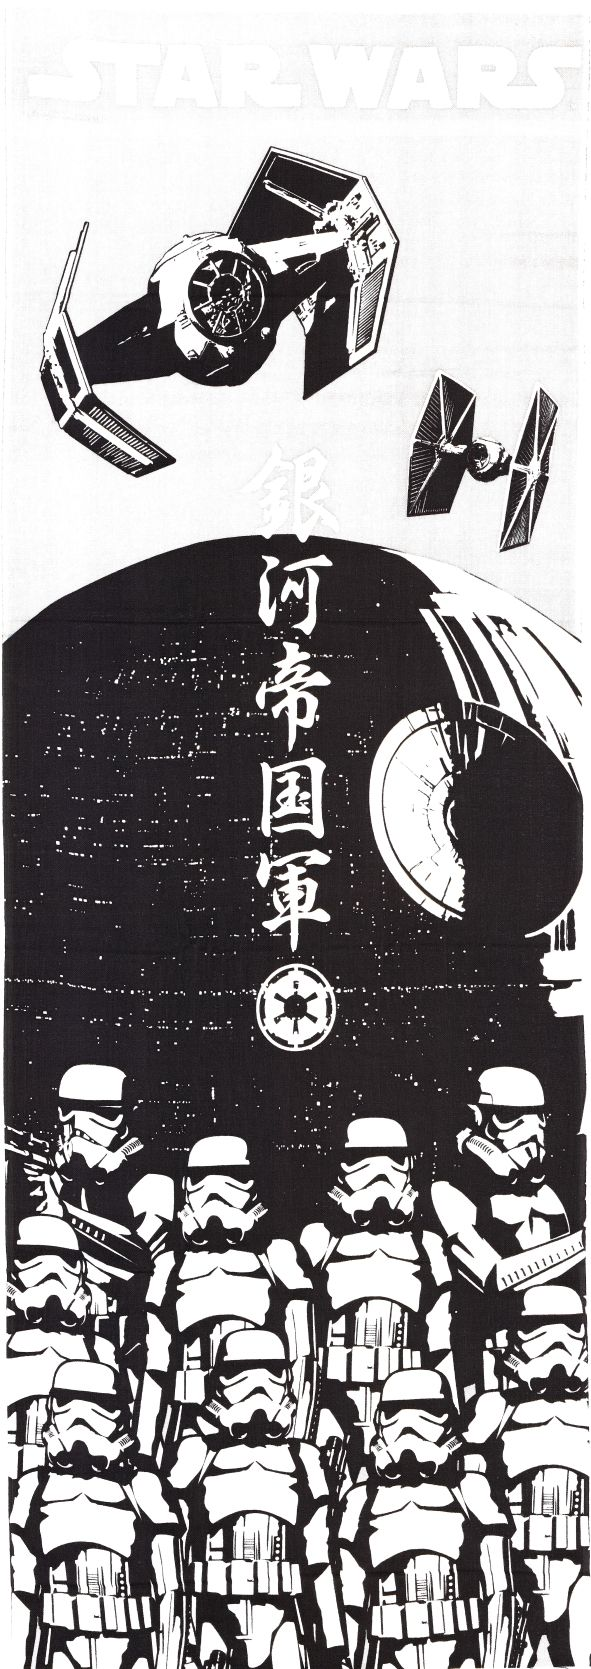 """The Forces of the Galactic Empire Star Wars Tenugui. TIE fighters fly high. Death Star looming in background. Stormtroopers ready. The Japanese writing on the tenugui reads """"Imperial Army of the Galactic Empire"""". 100% cotton and printed with water based inks. 36"""" long and 13 1/2"""" wide."""